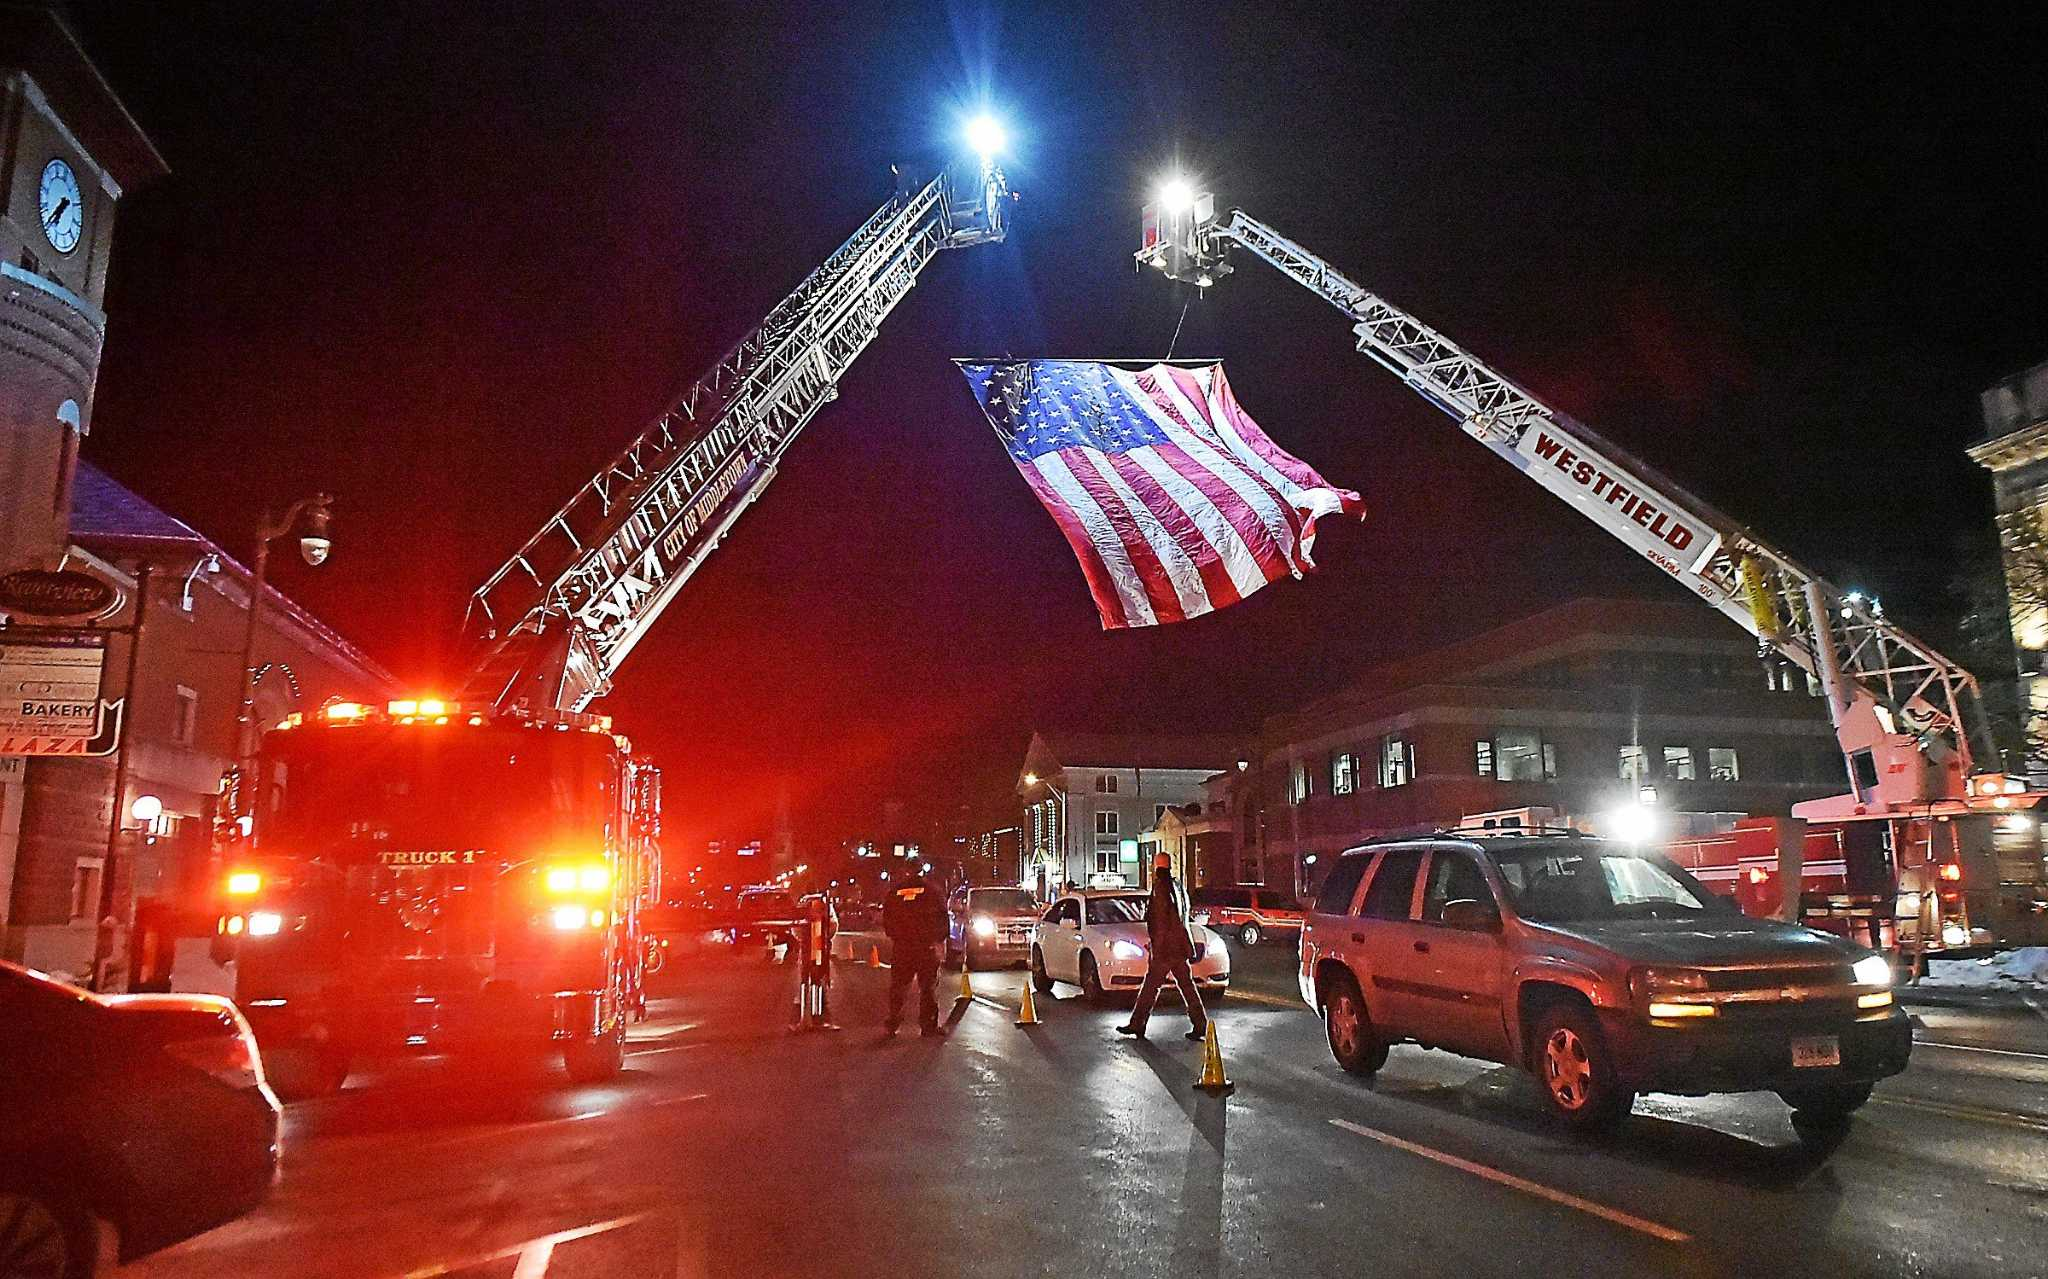 Middletown marks 15th anniversary of officer's death - The